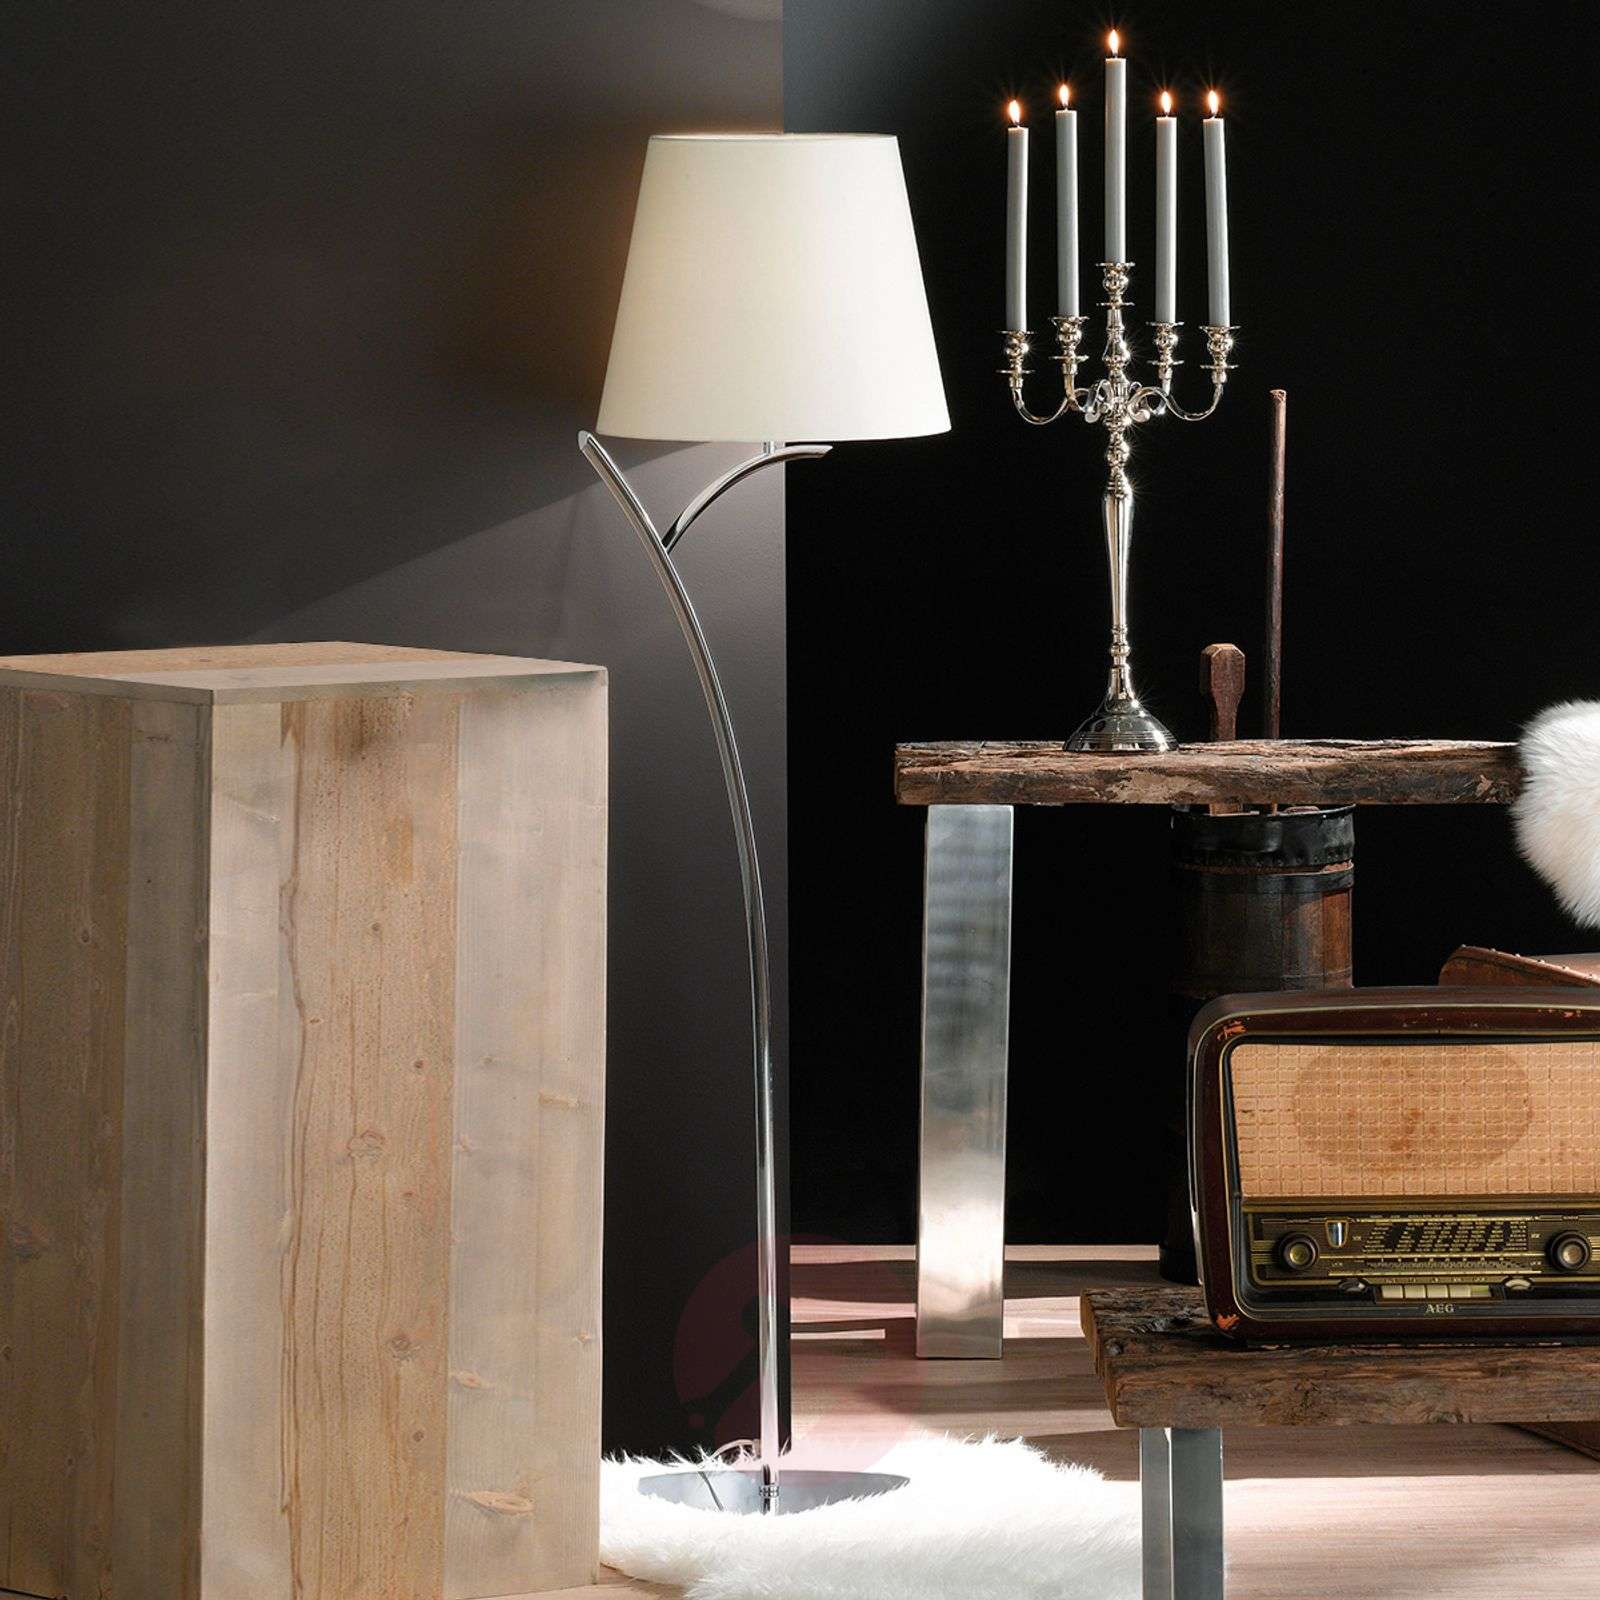 Classic floor lamp y with fabric lampshade lights classic floor lamp y with fabric lampshade 4581155 01 aloadofball Choice Image